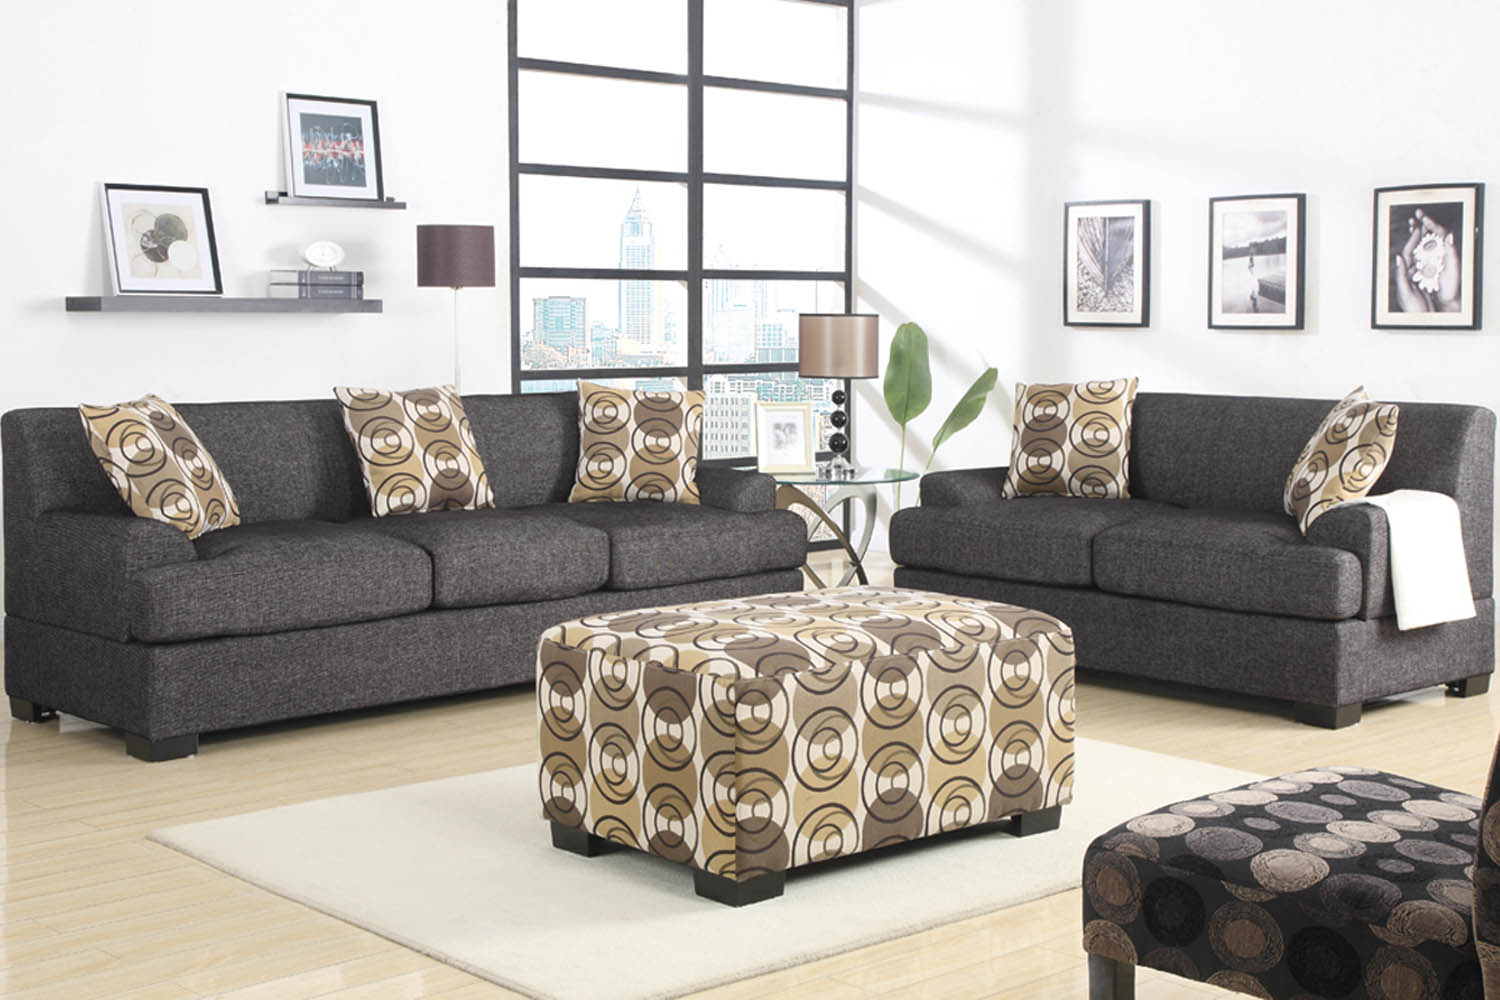 2 piece grey sofa set for Living room ideas with 3 sofas